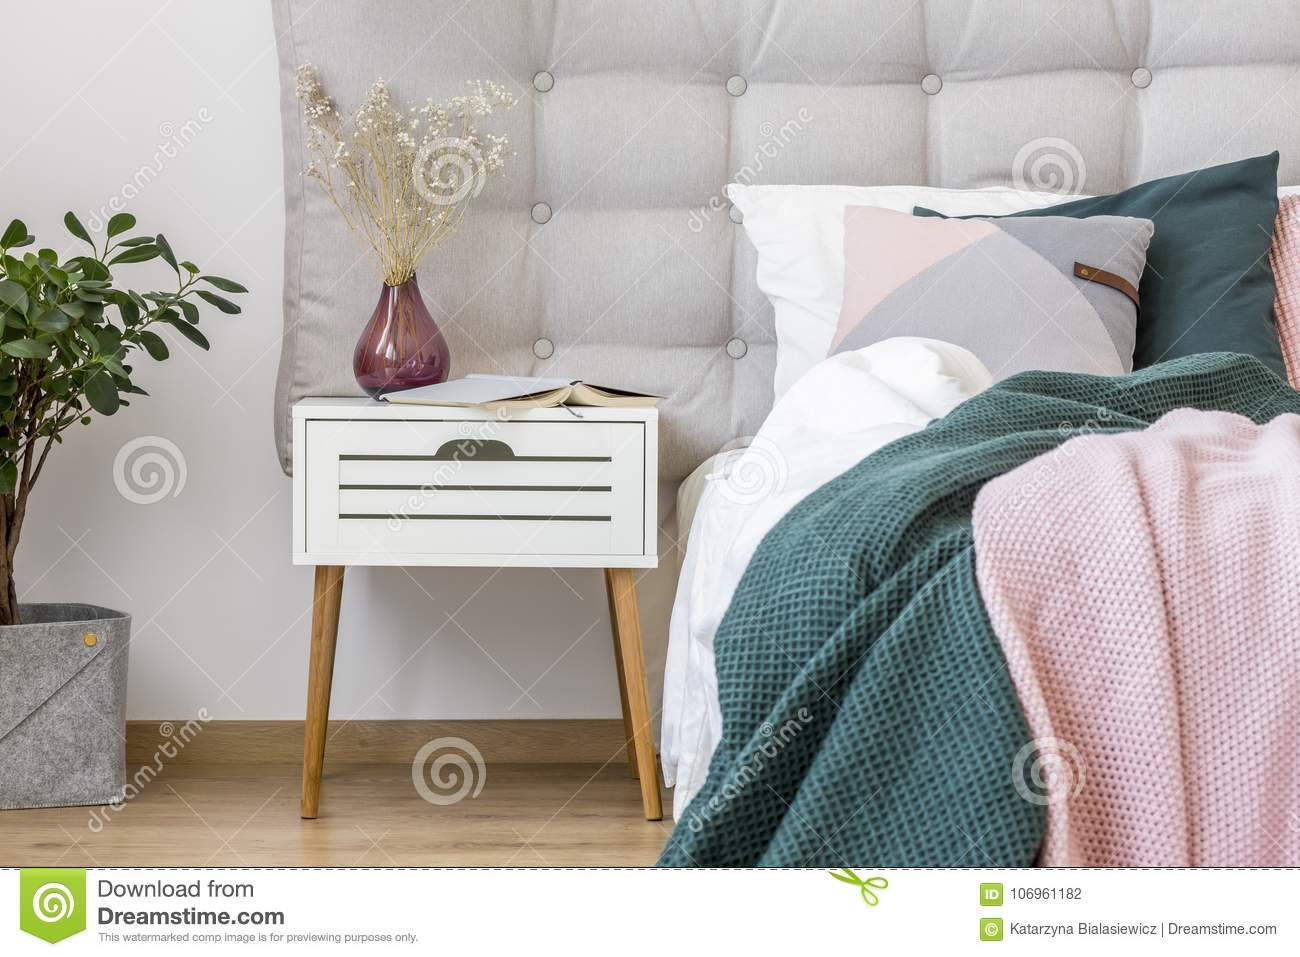 White Nightstand In Pastel Bedroom Stock Photo Image Of Pink Green 106961182